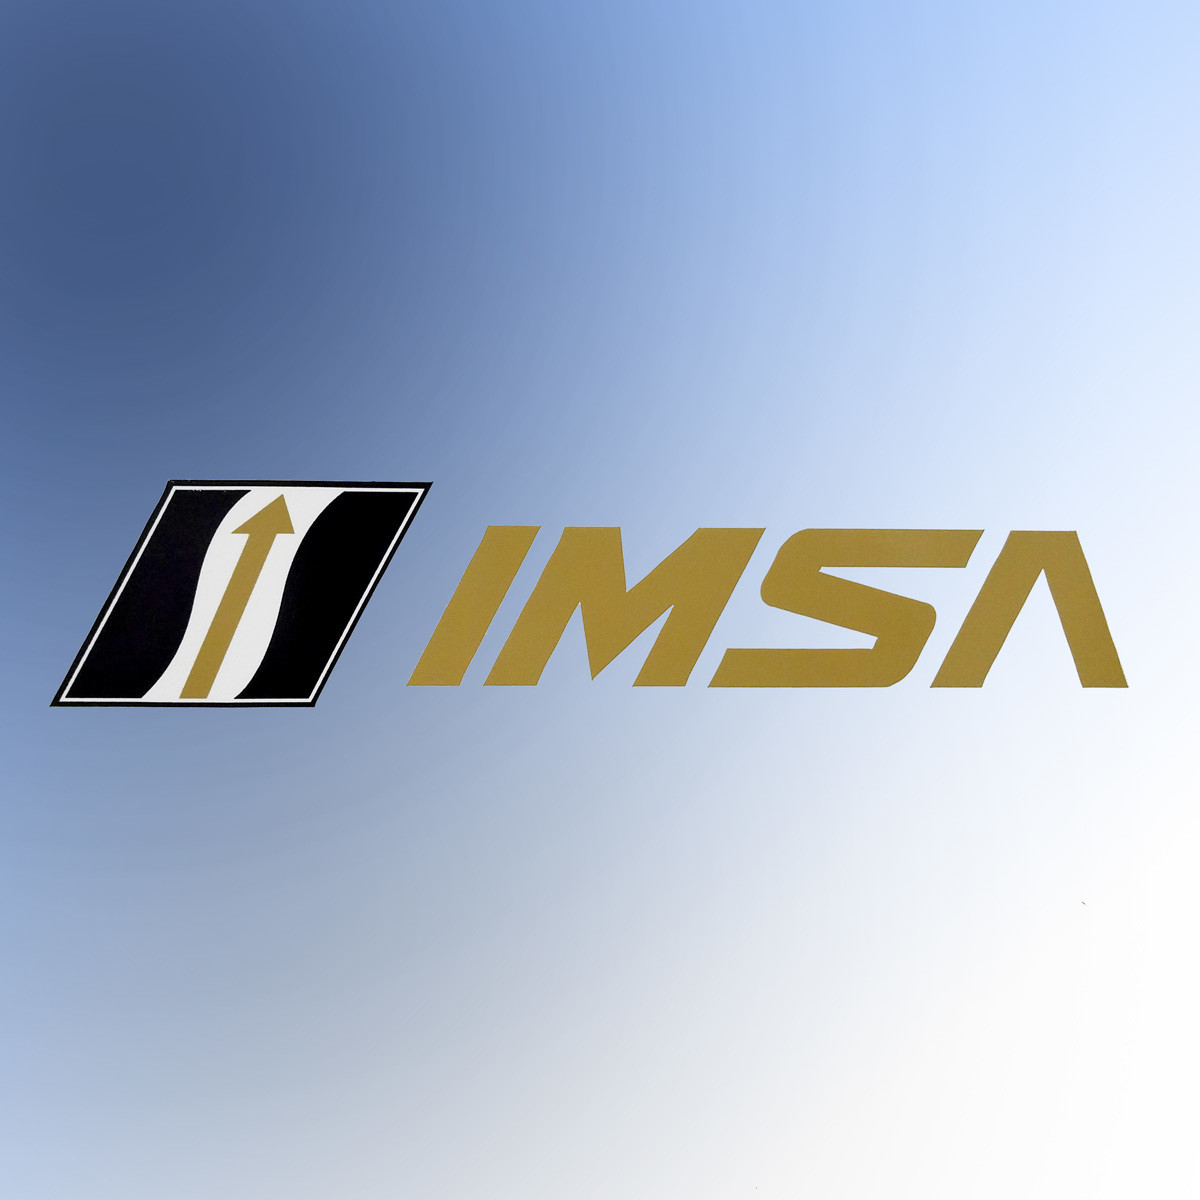 IMSA GOLD Decal - Free with Purchase